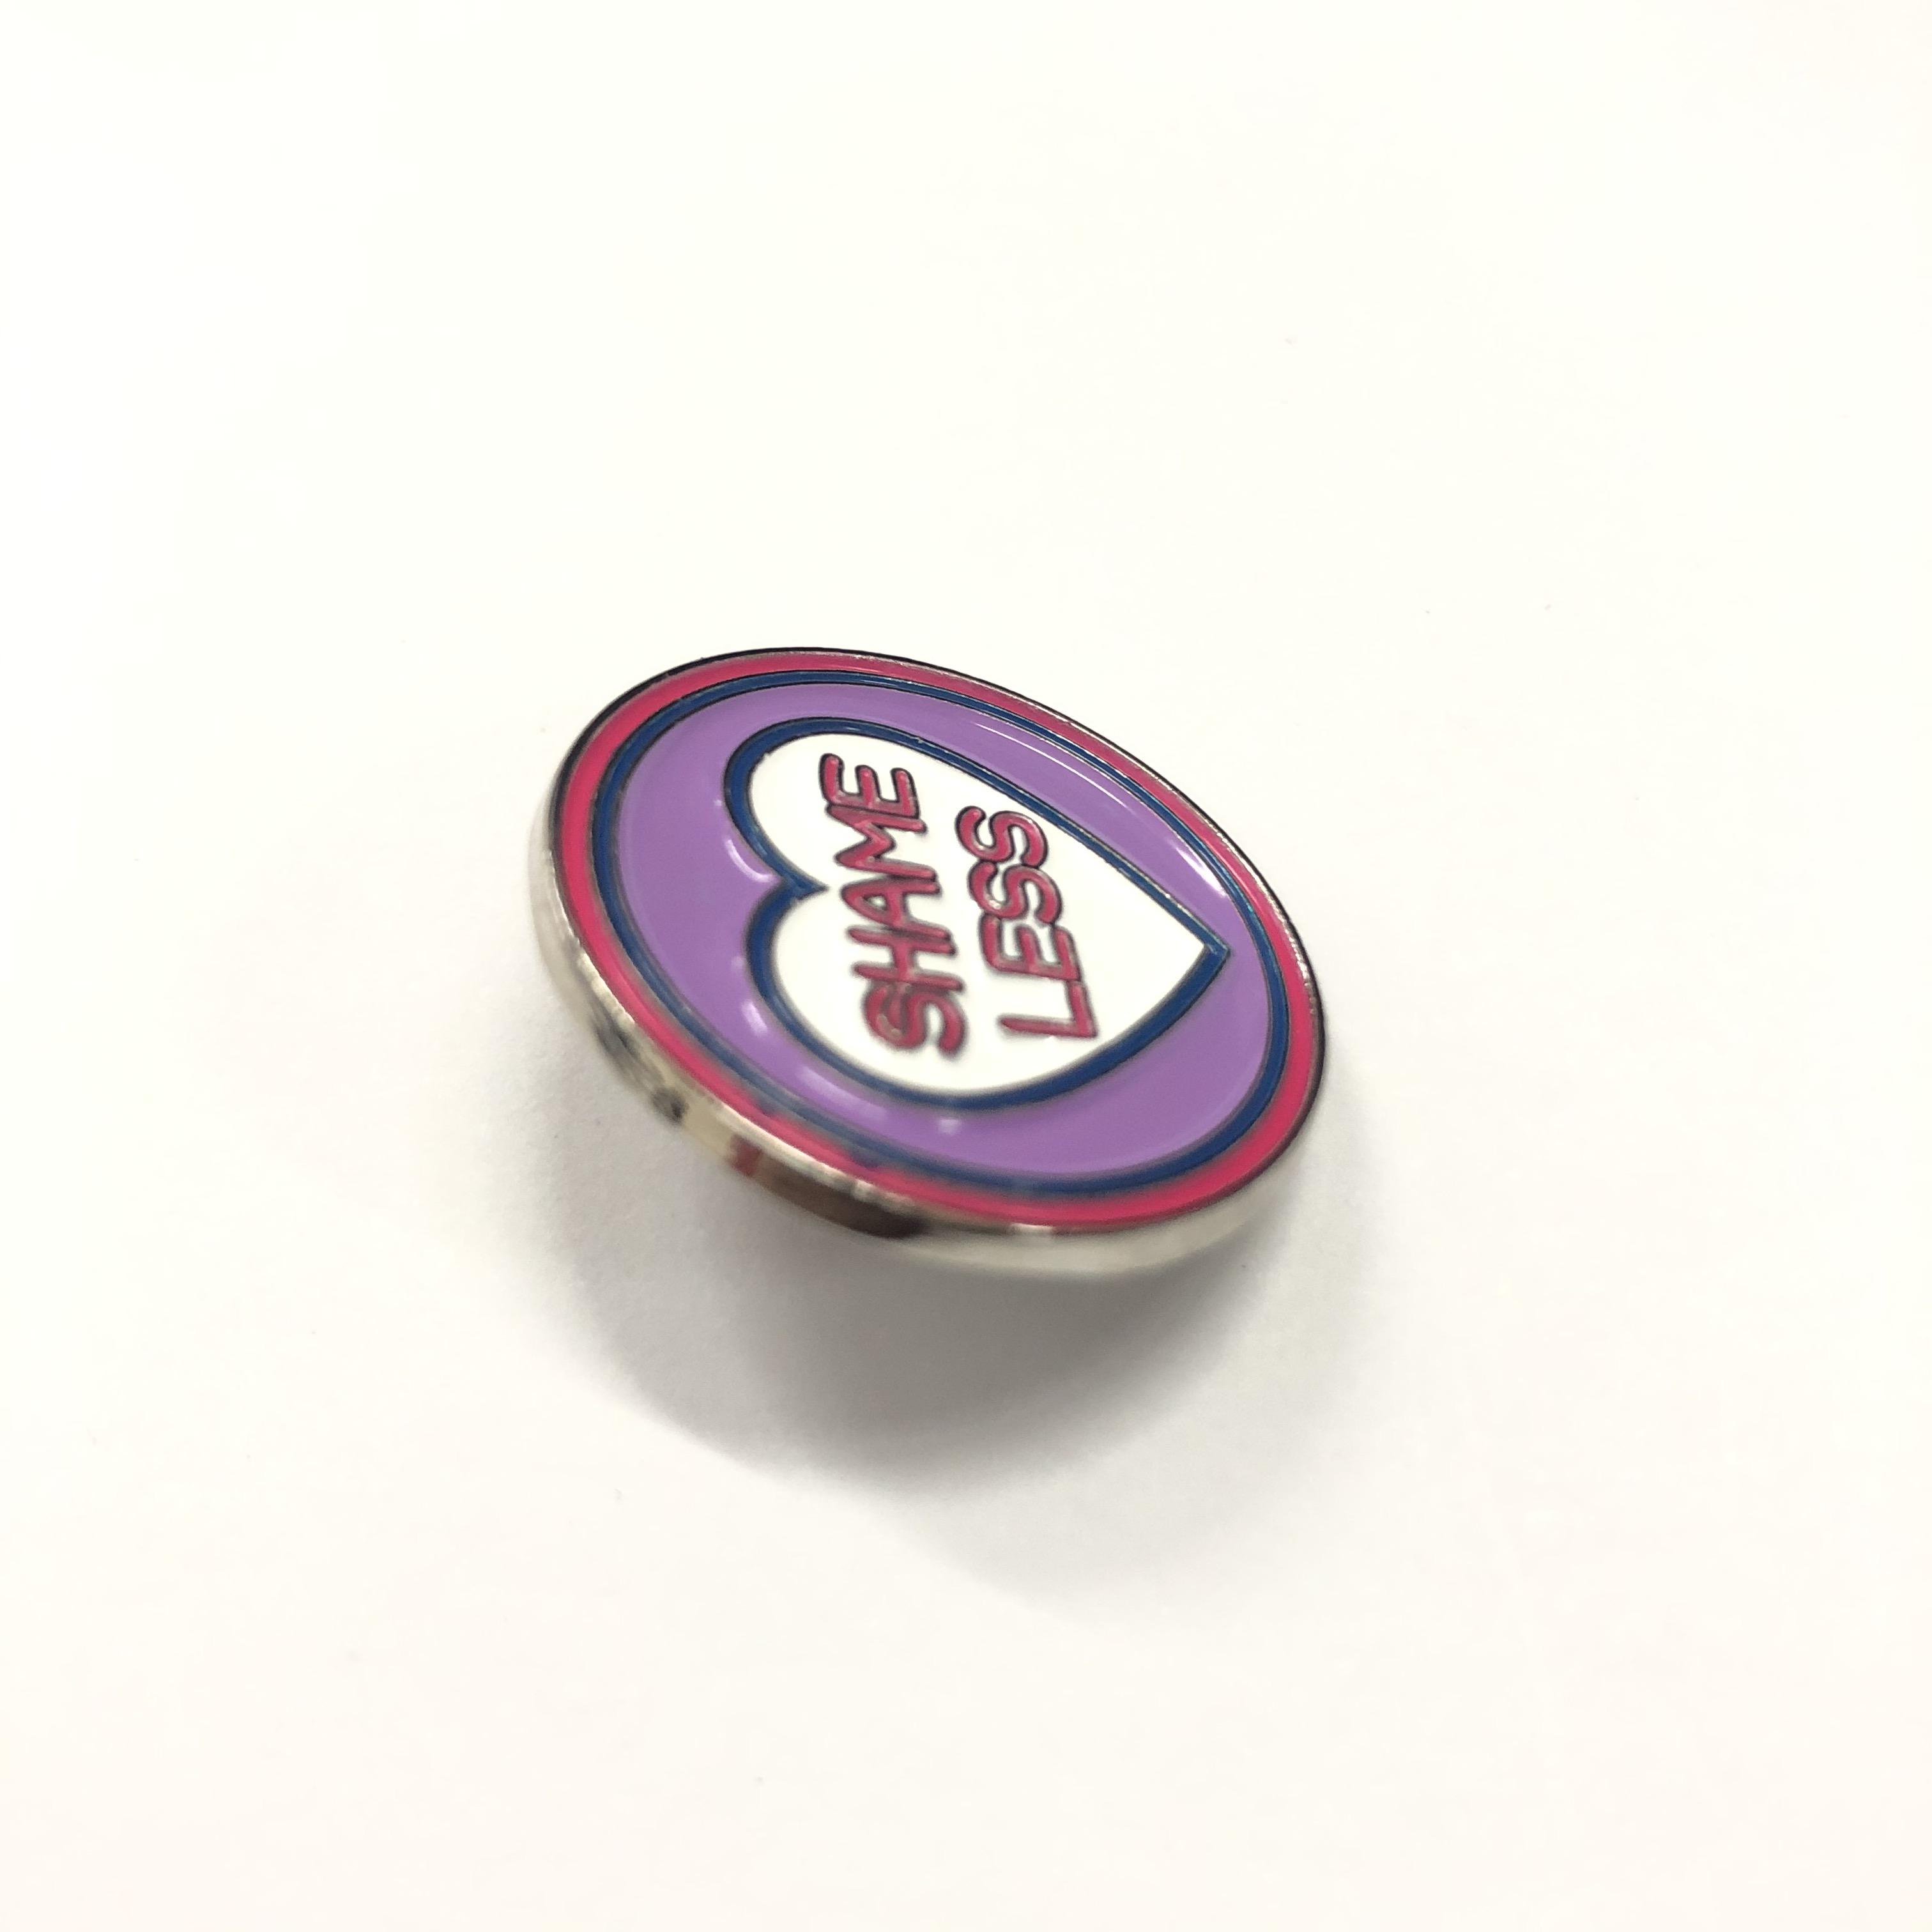 Customized zinc alloy painted-dry lapel pin for organization for gift